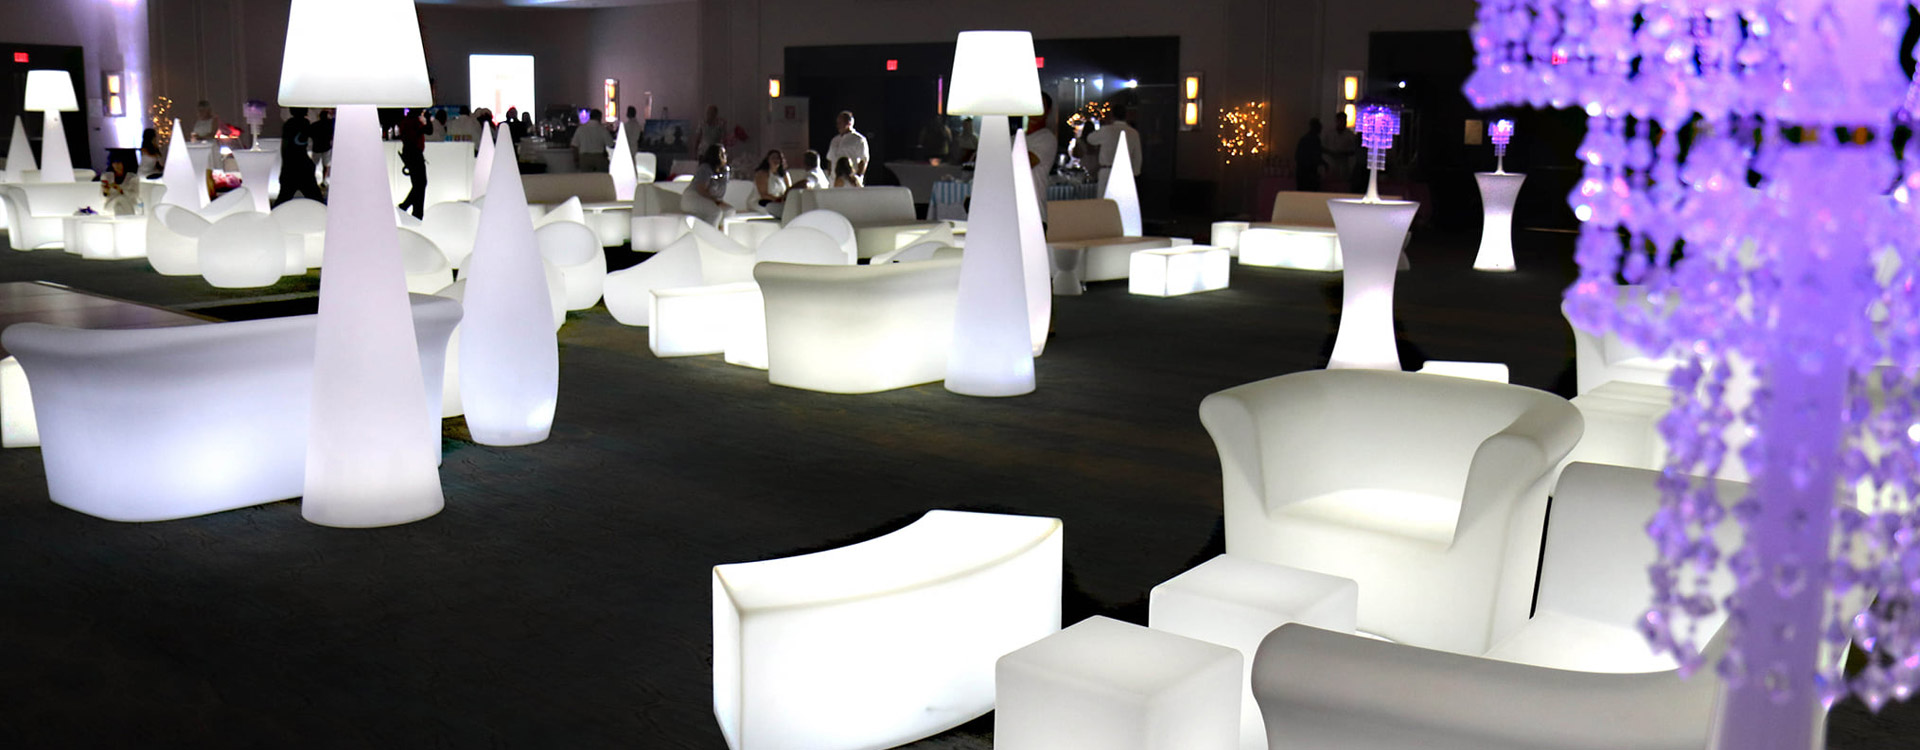 LED/Glow Furniture Rental Miami